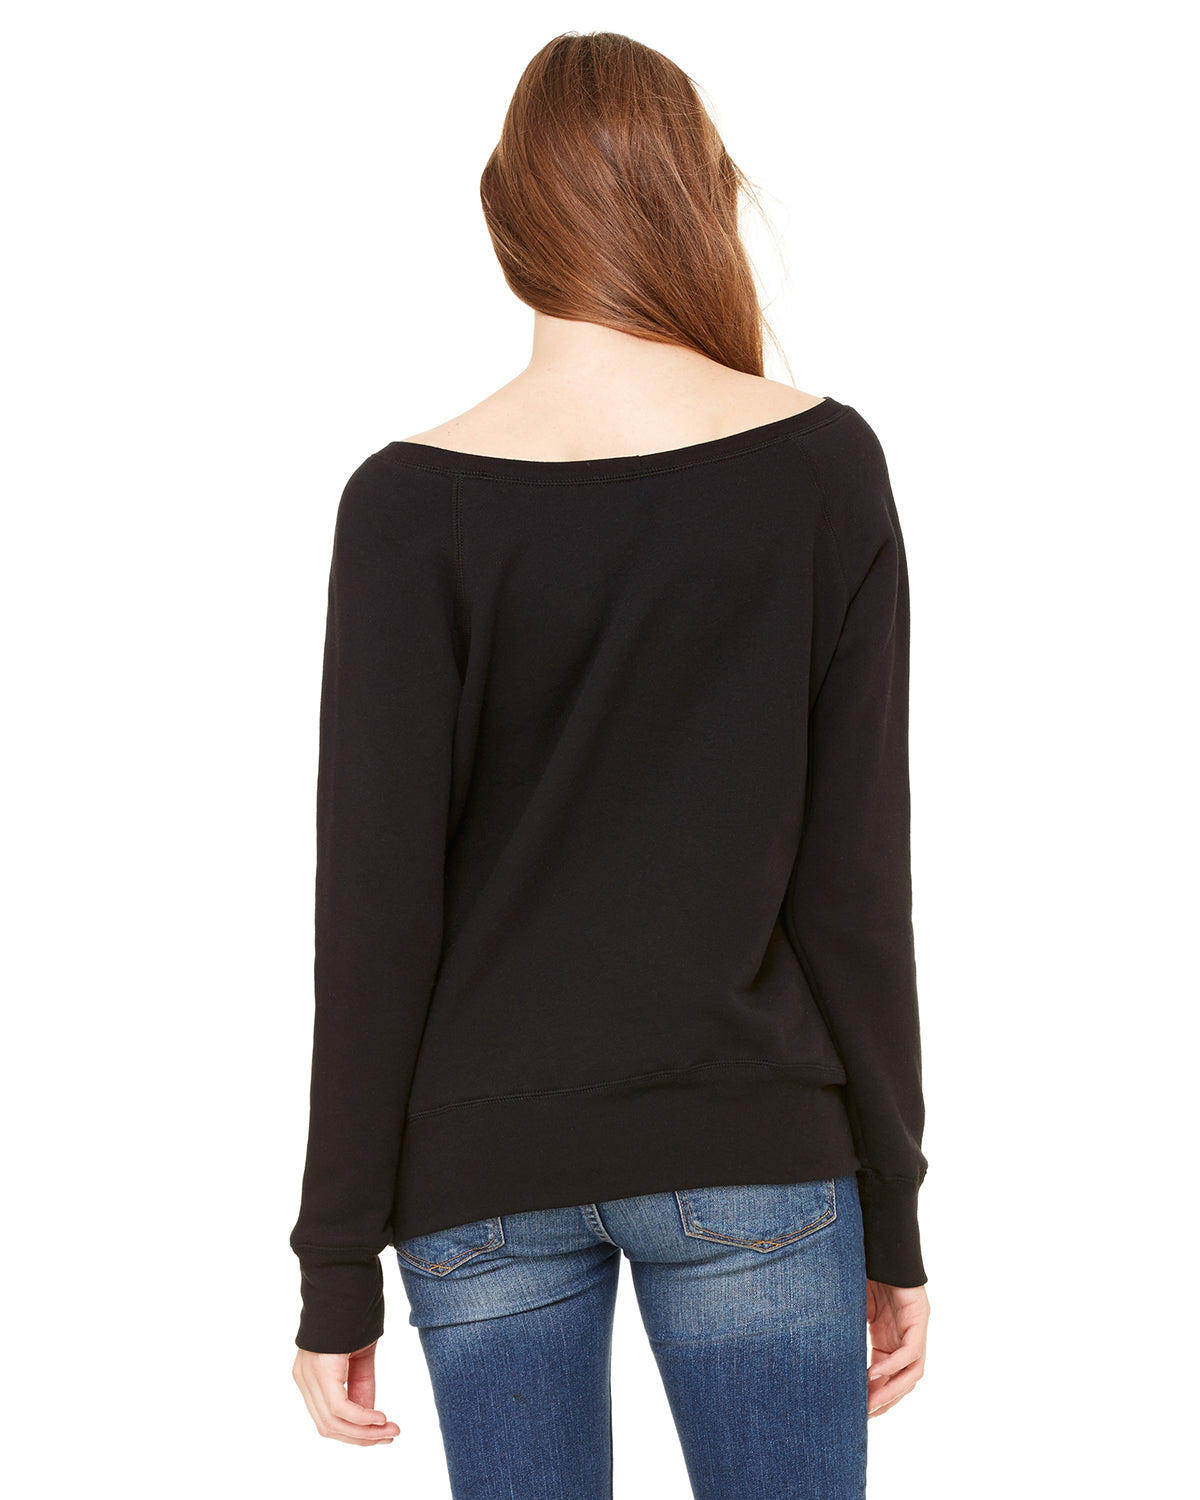 Nap Queen Off Shoulder Sweatshirt Black